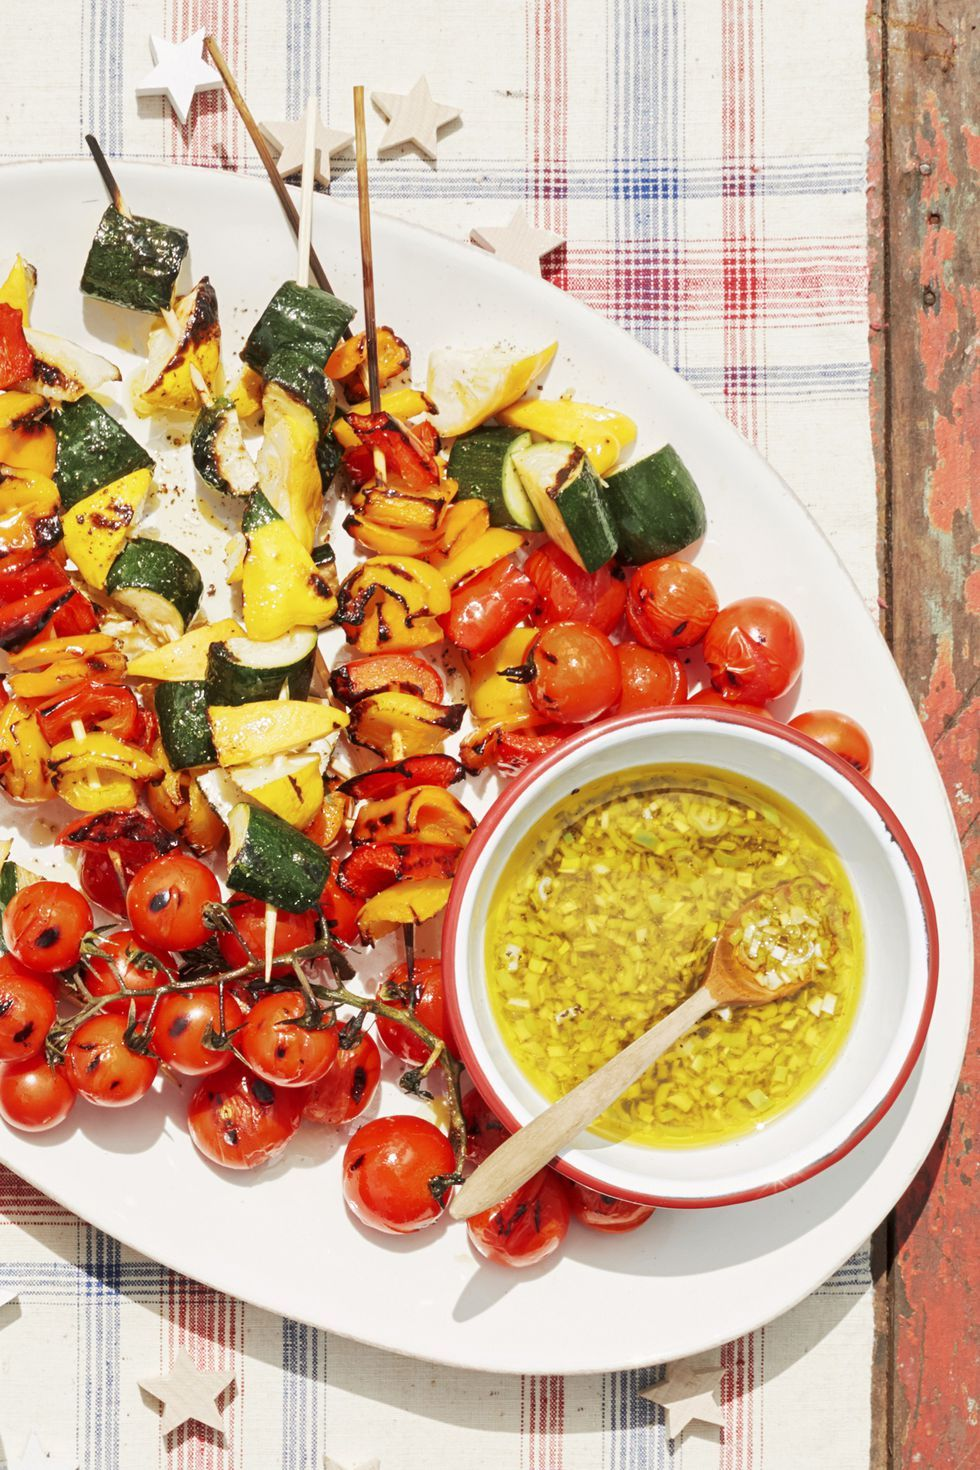 Vegetable Kebabs with Lemon-Scallion Vinaigrette